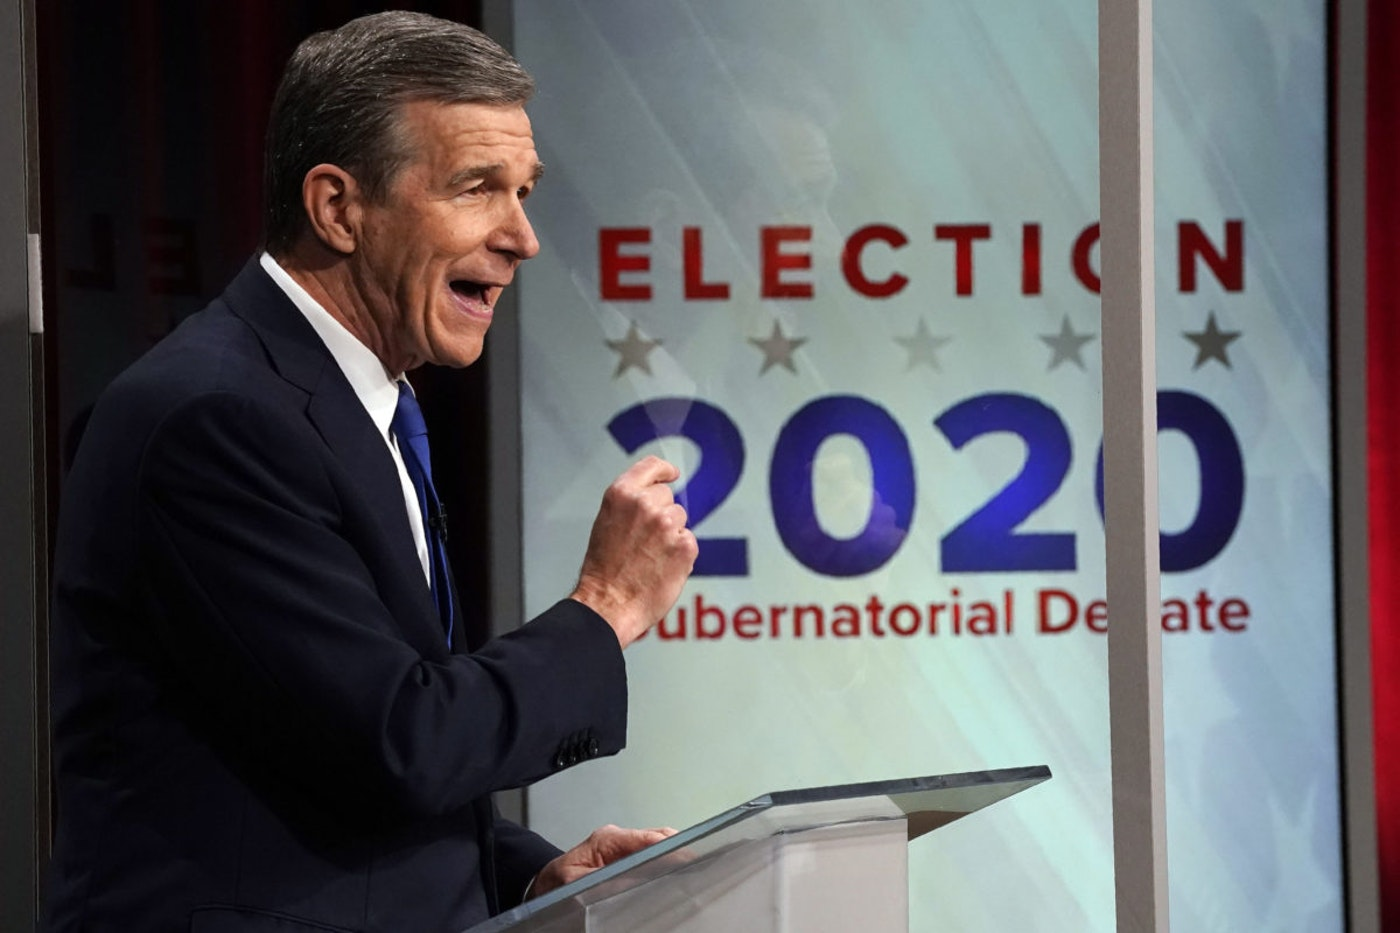 North Carolina Gov. Roy Cooper makes a comment during a live televised debate with and Lt. Gov. Dan Forest at UNC-TV studios in Research Triangle Park, N.C., Wednesday, Oct. 14, 2020. (AP Photo/Gerry Broome)